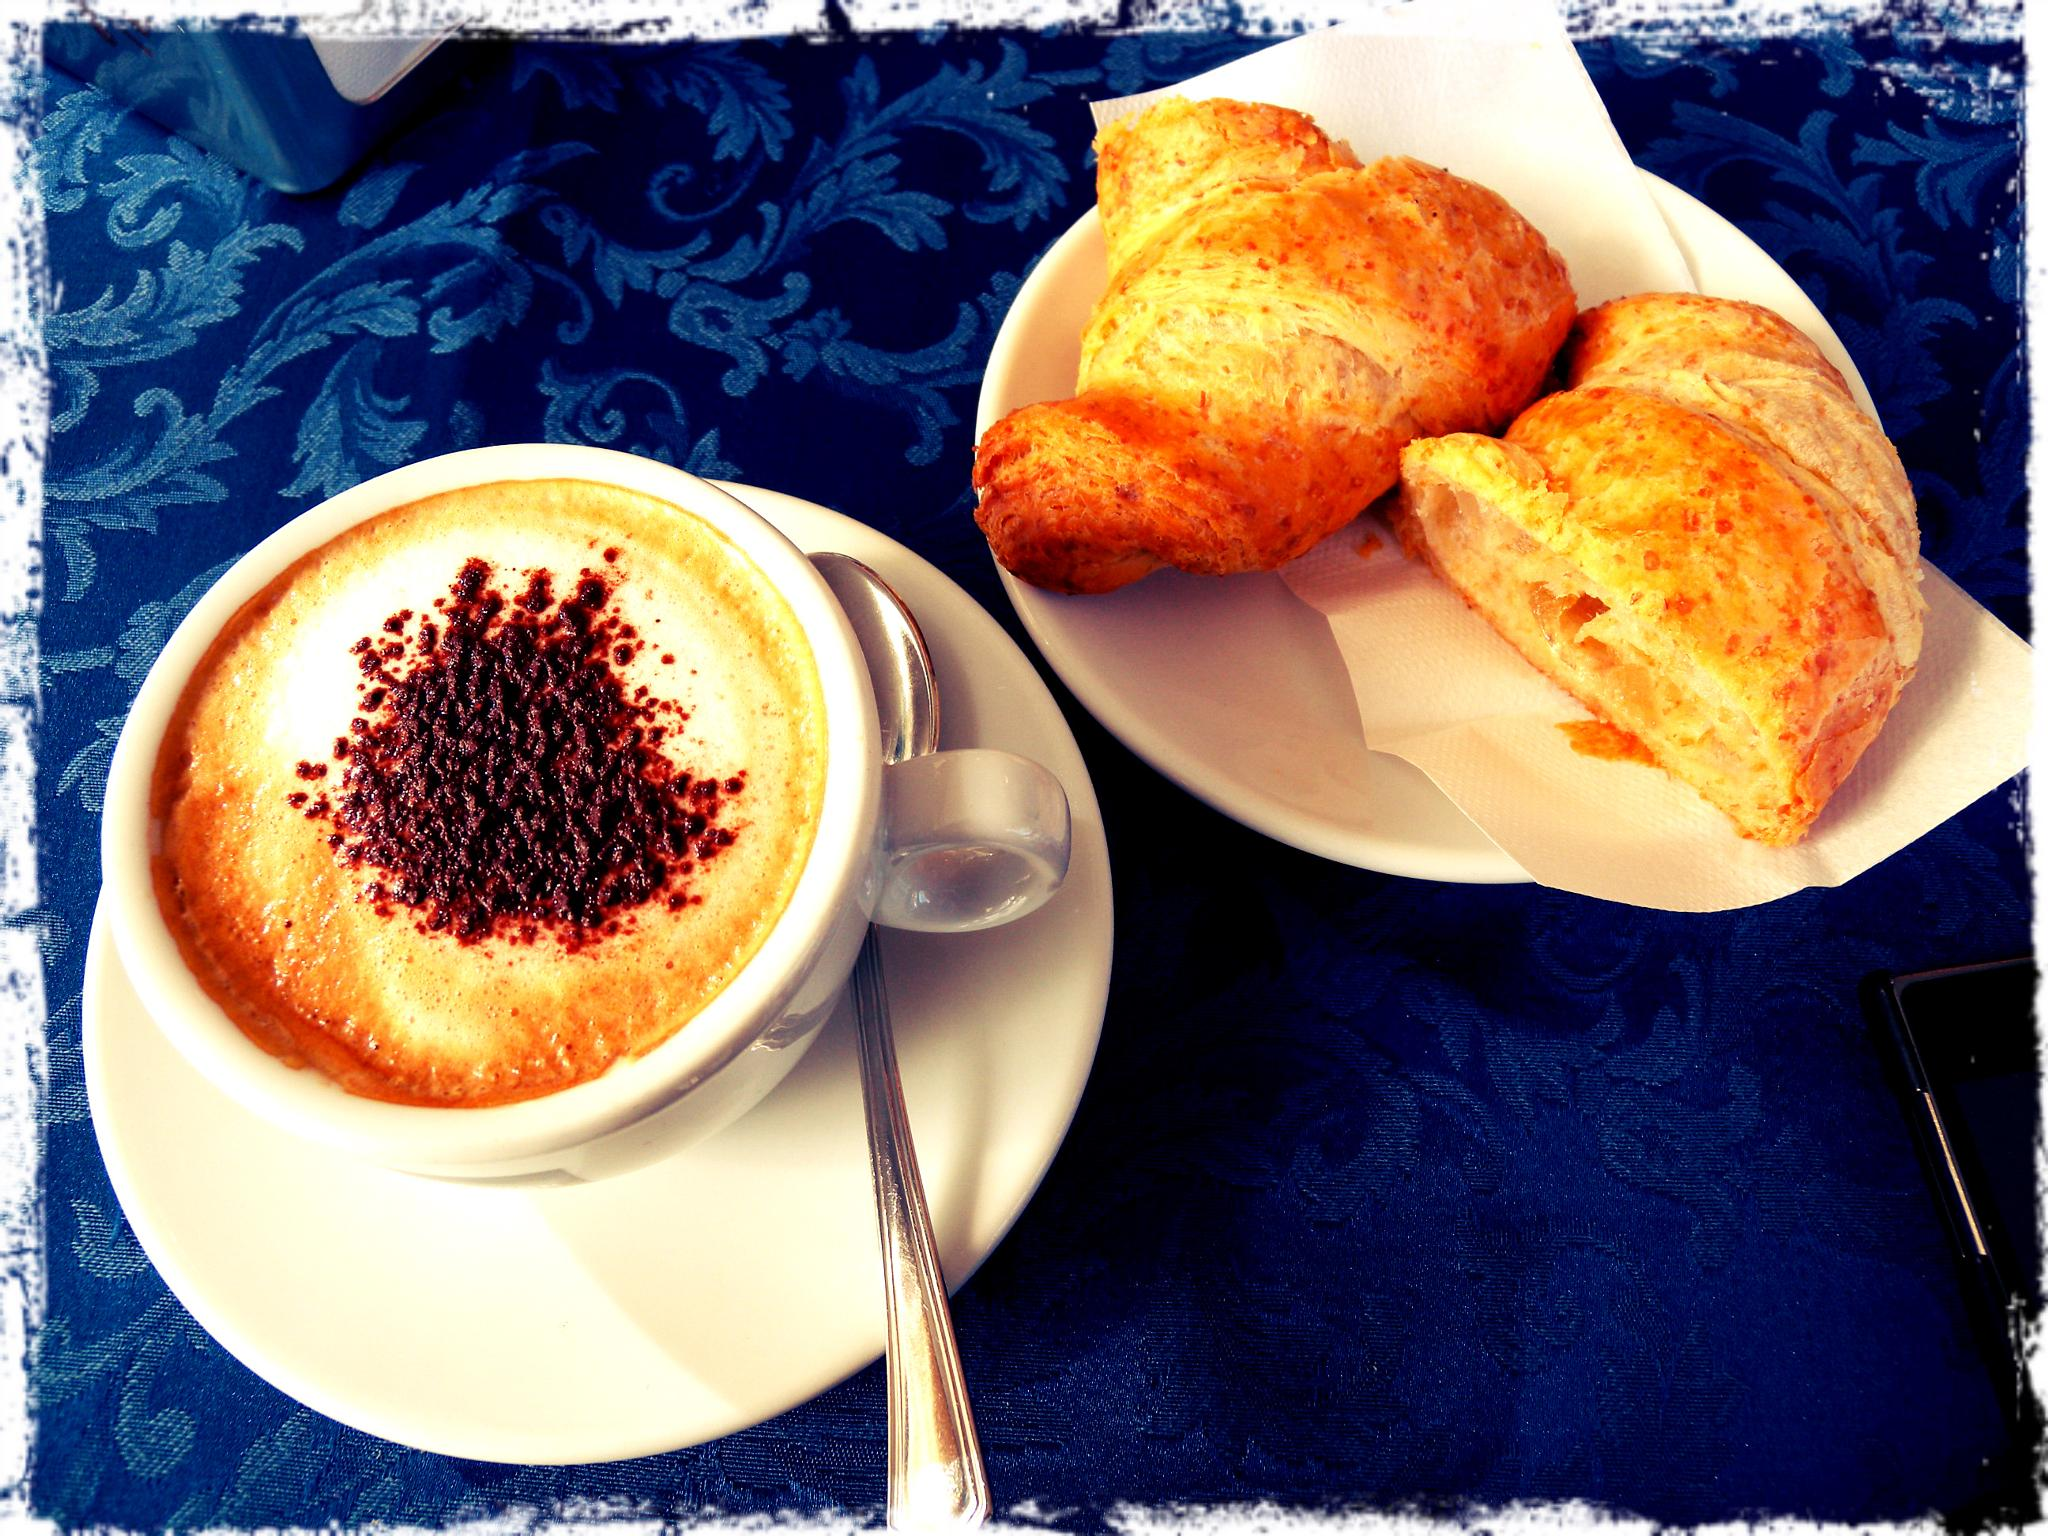 caffe by Reby Costa